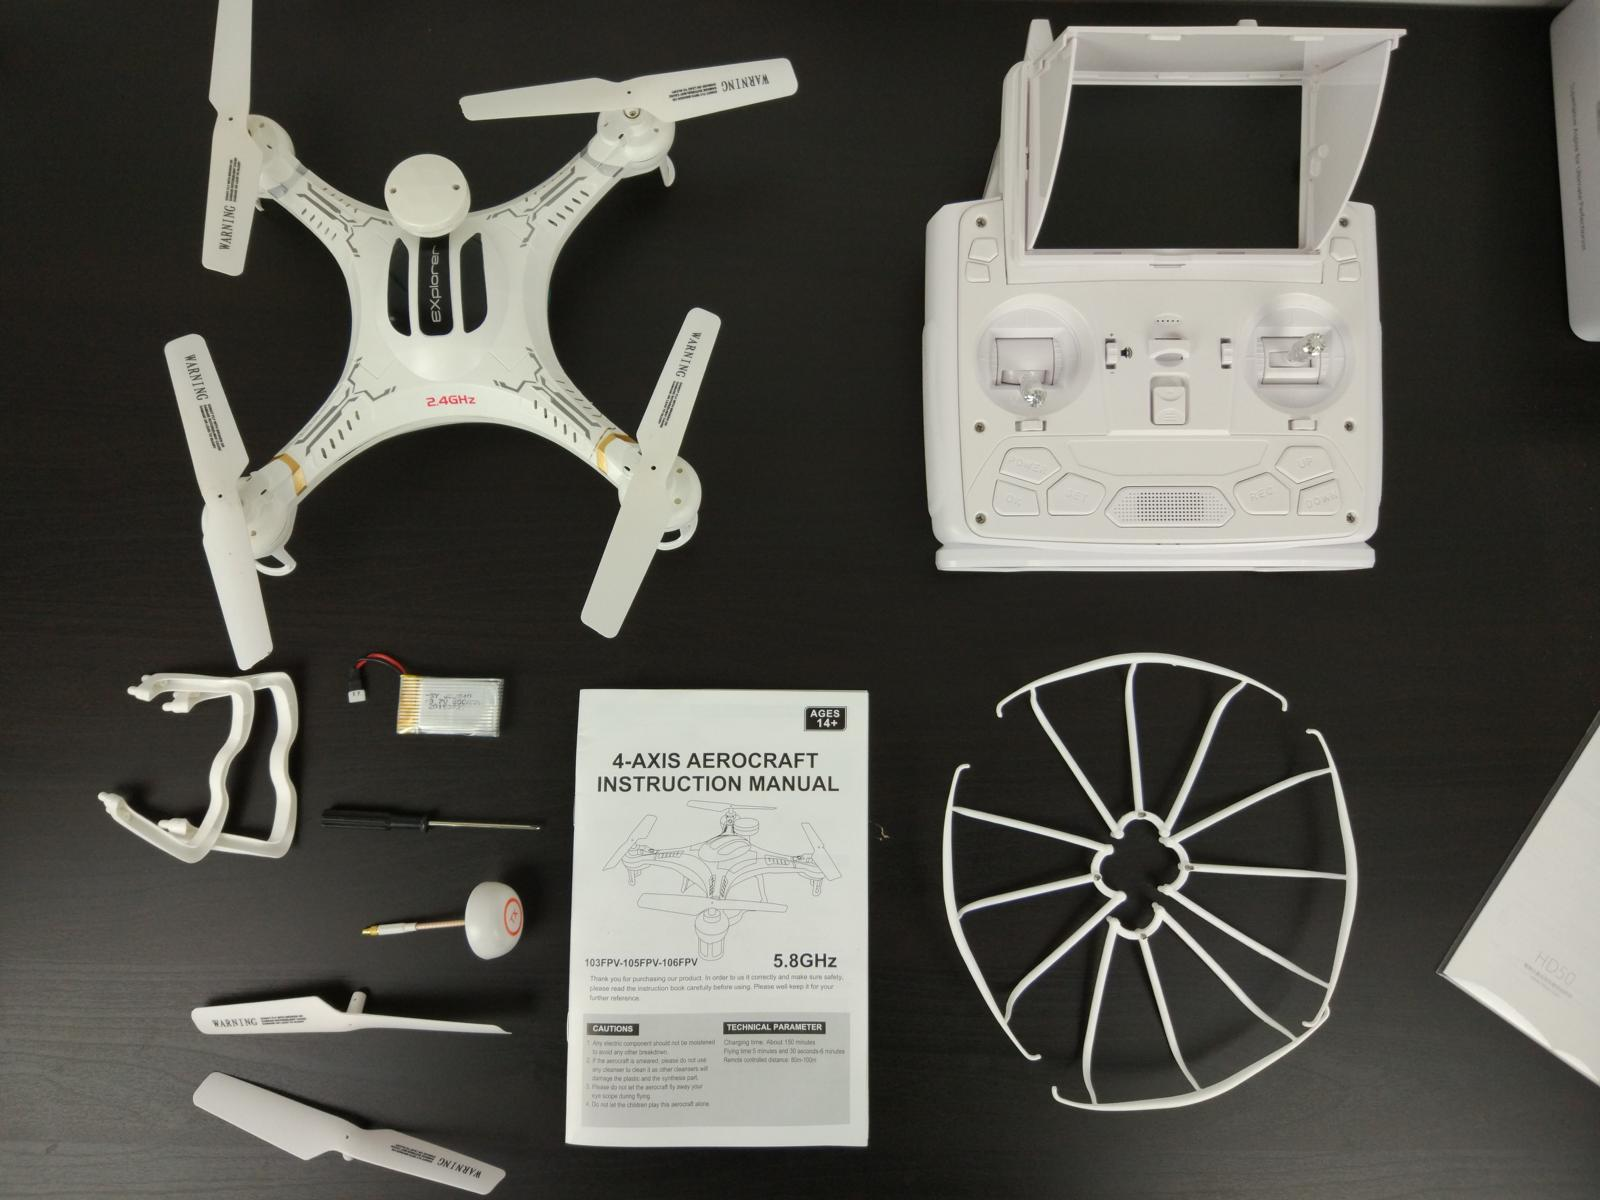 Xinlin X118 Quadcopter and additional equipment standing on the black table.